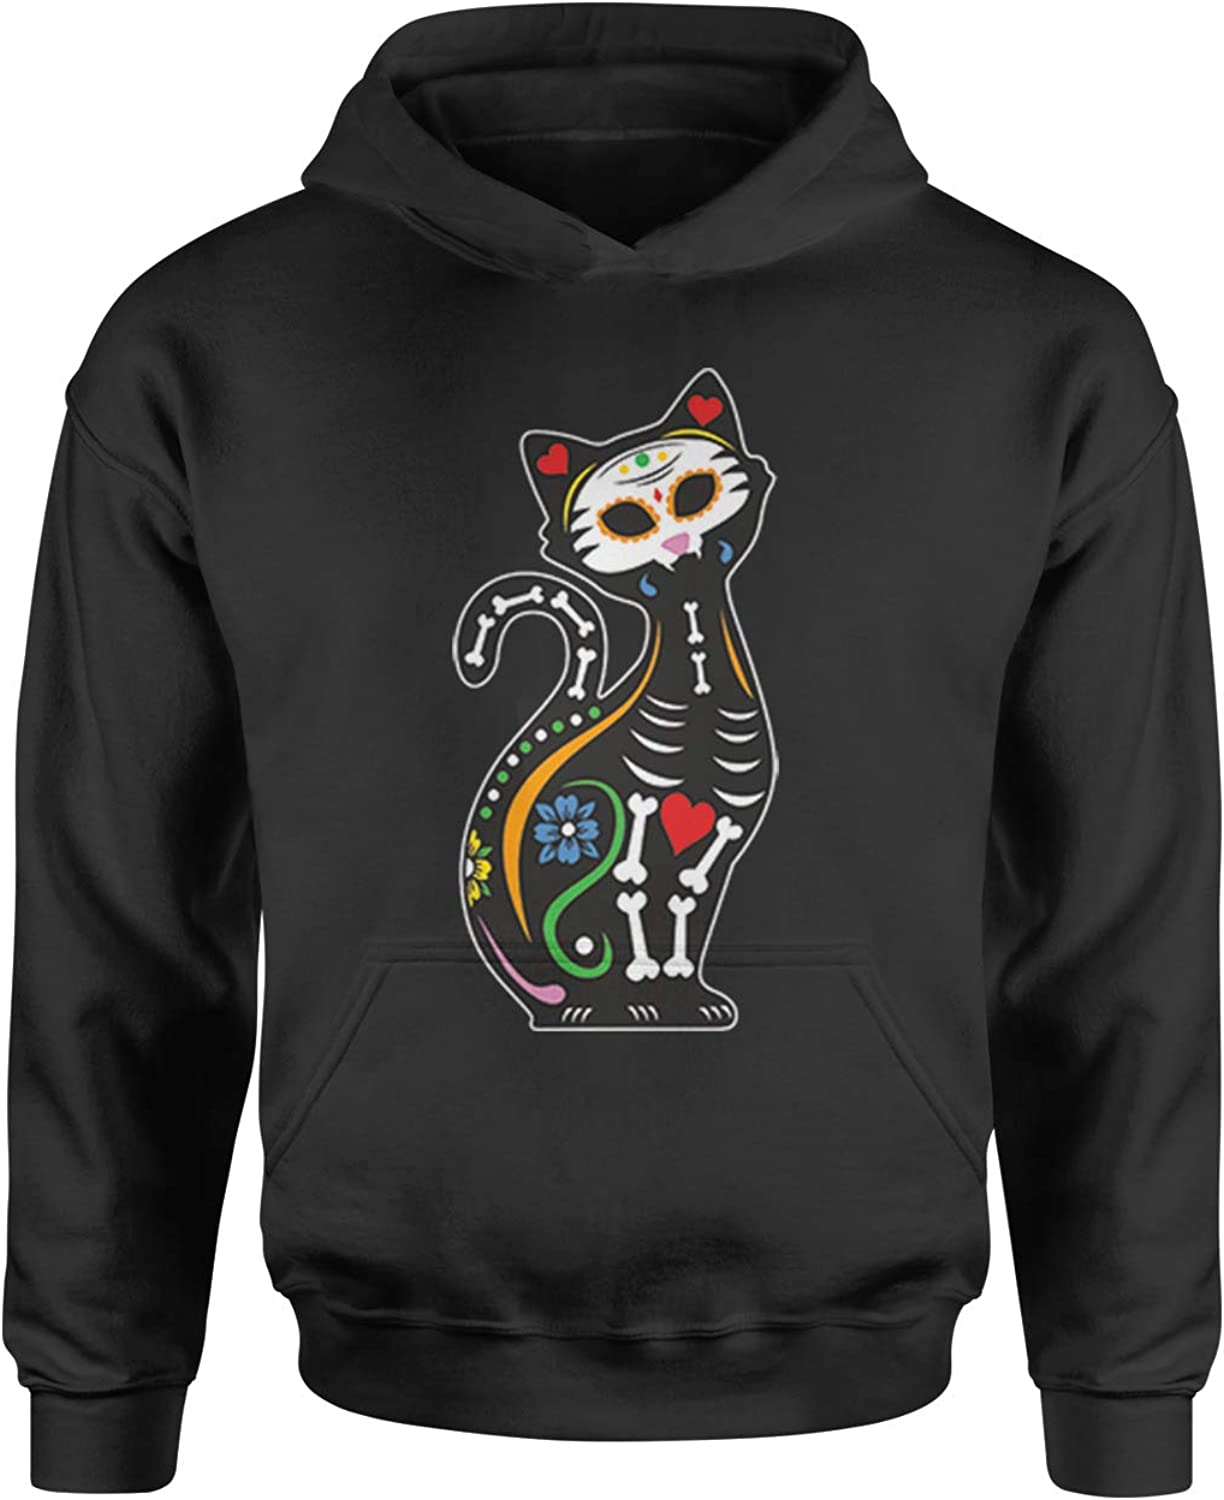 Expression Tees Skeleton Cat Day of The Dead Youth-Sized Hoodie